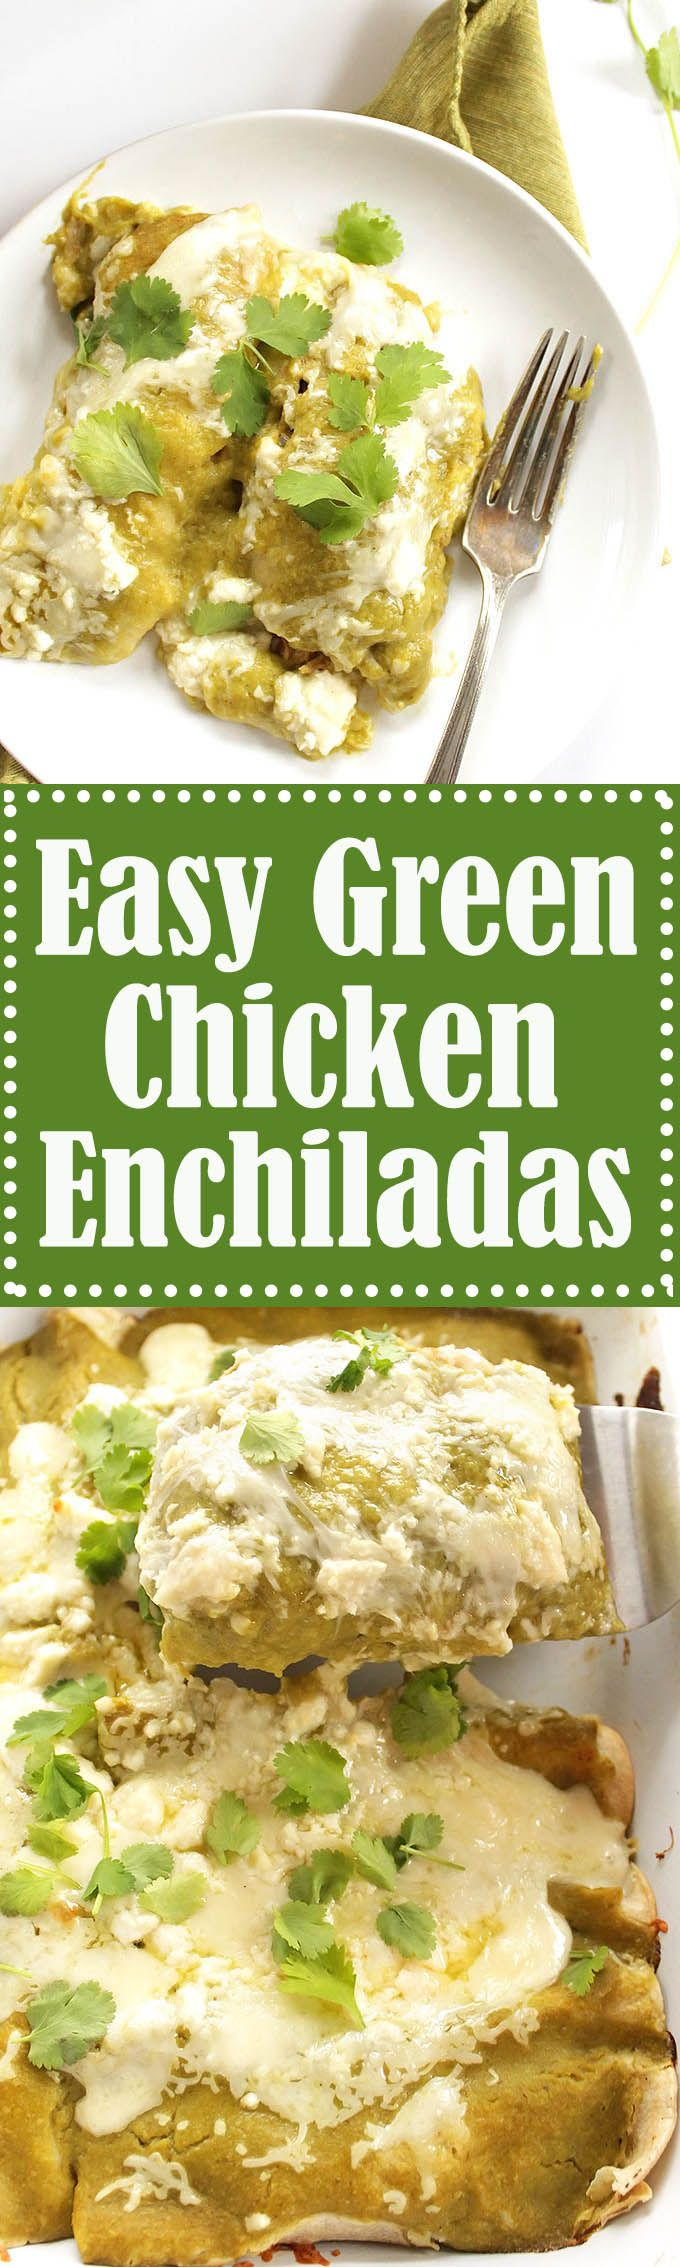 Easy Green Chicken Enchiladas - BEST ENCHILADAS! Stuffed with cheese and shredded chicken. Topped with roasted green enchilada sauce! Perfect for a weeknight meal! Gluten Free | robustrecipes.com